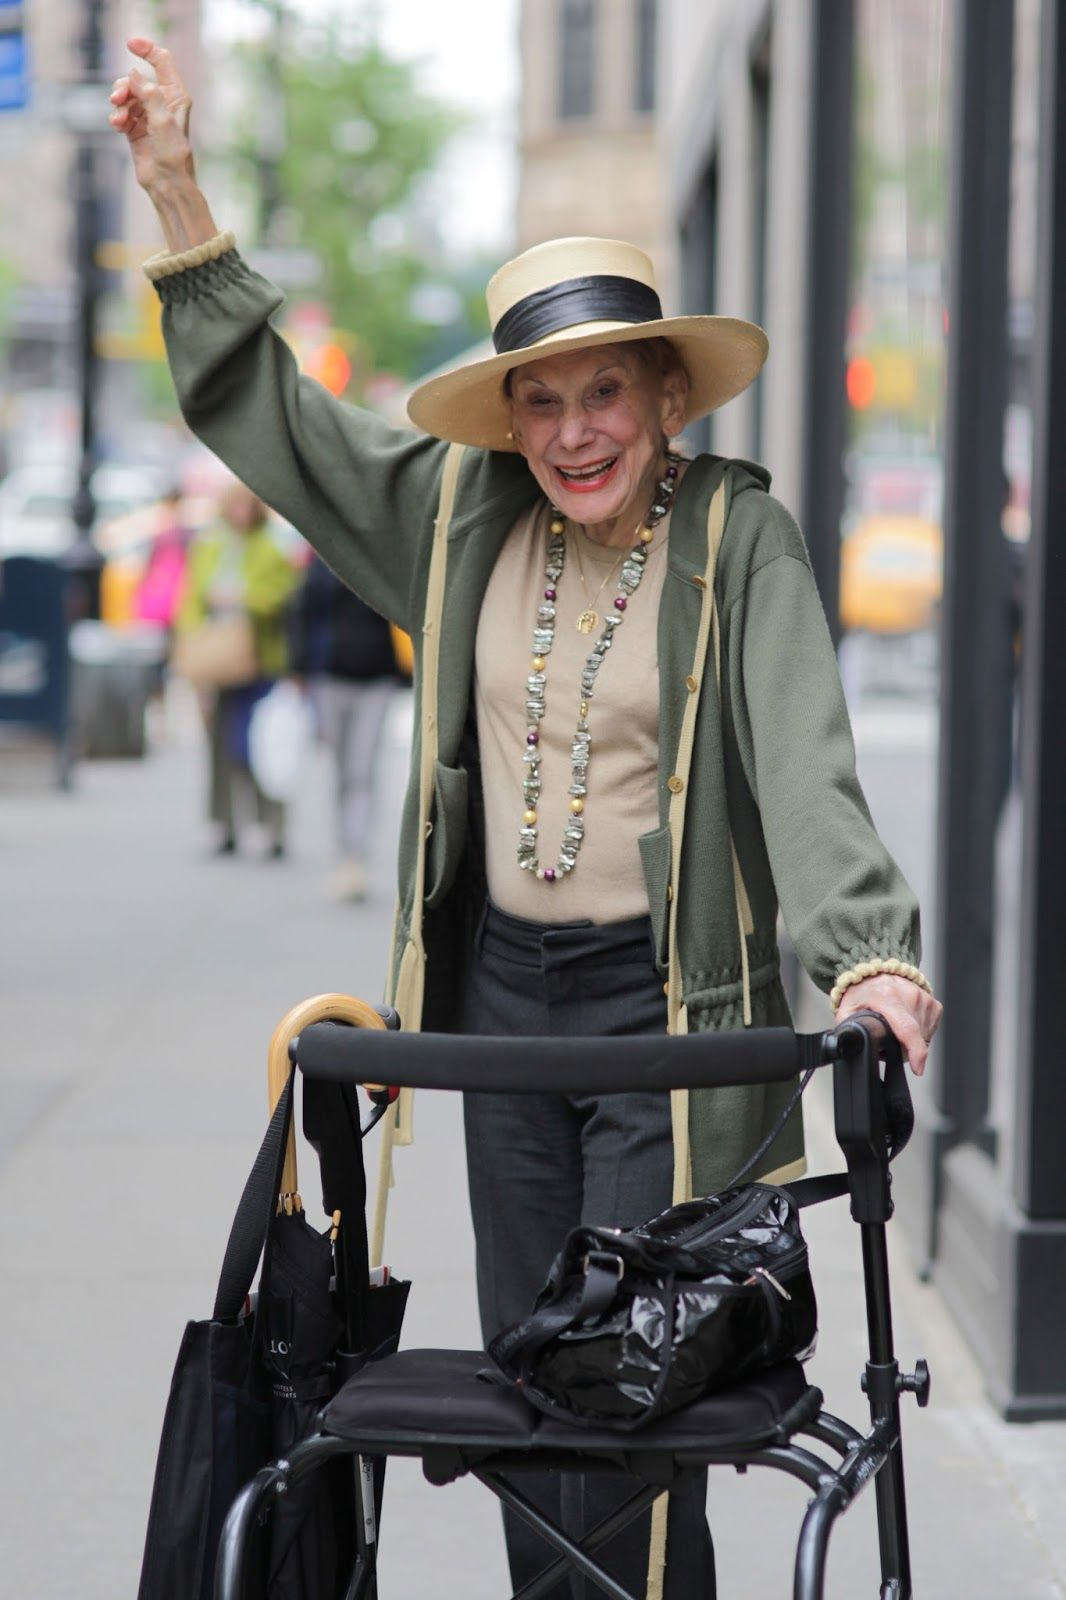 ADVANCED STYLE: Spirited Style....want to see this documentary. ..love the spirit of these ladies and their love for being fashionable at any age